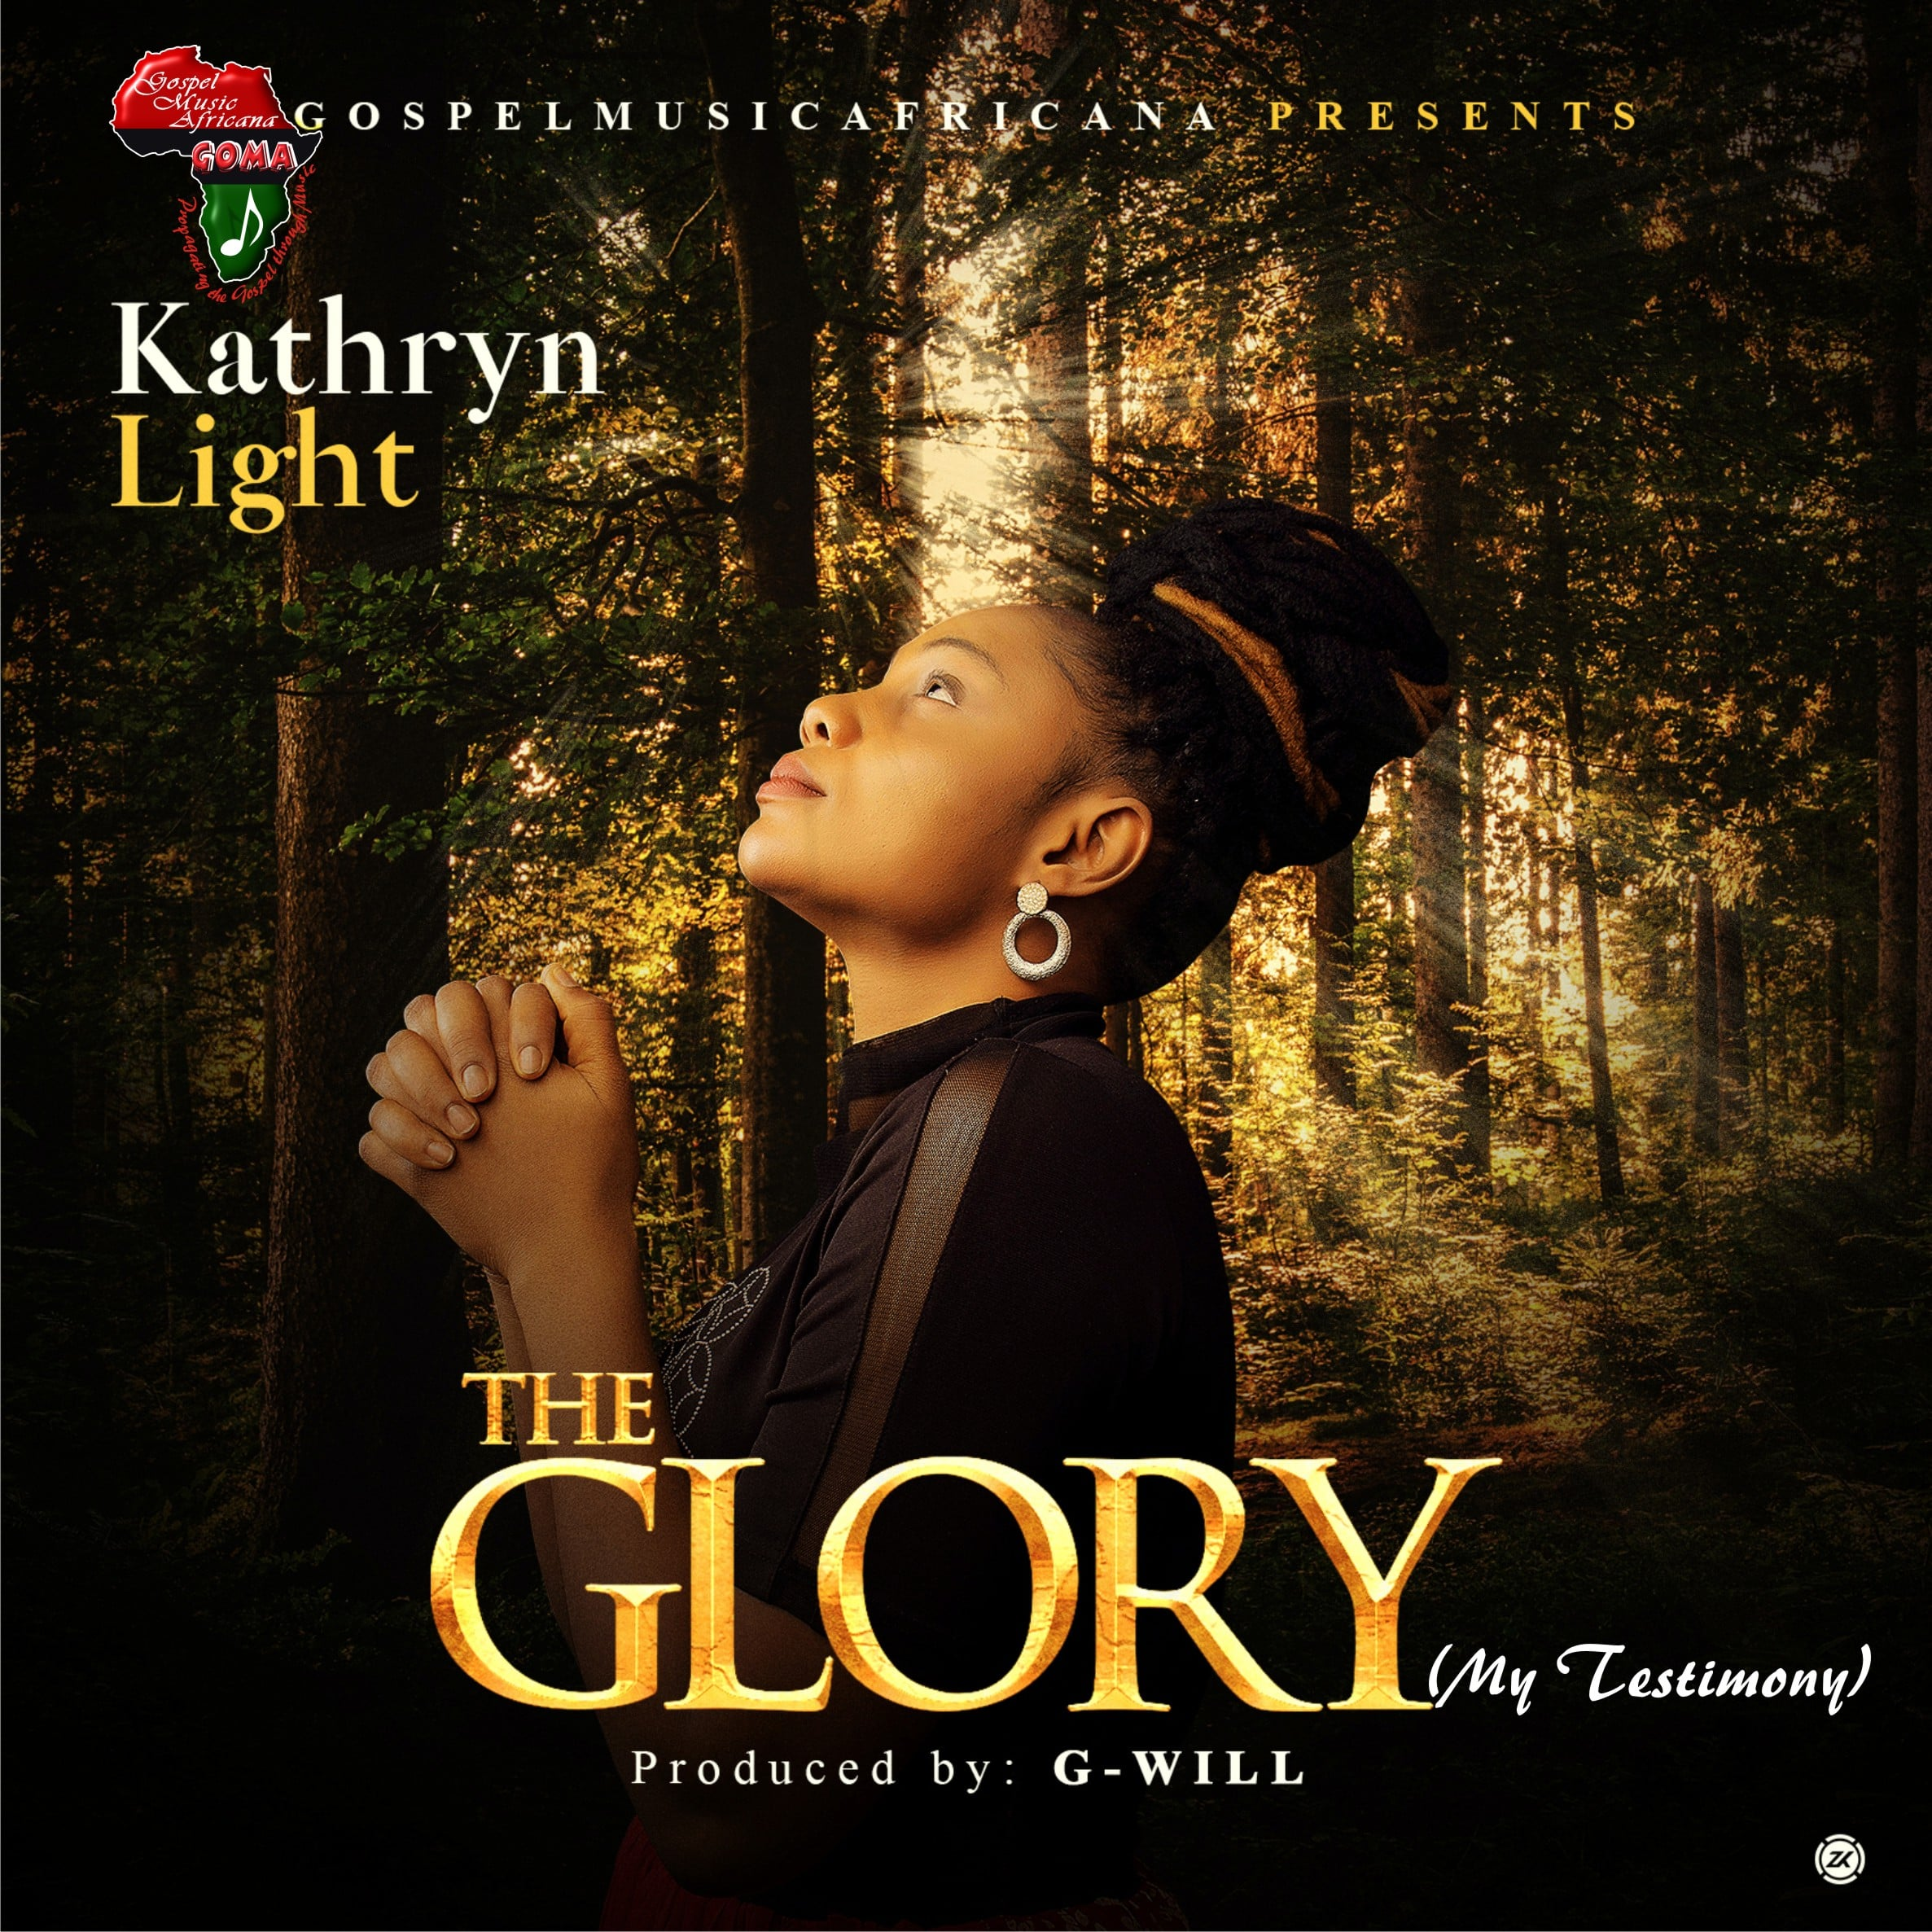 Download mp3: The Glory – Kathryn Light